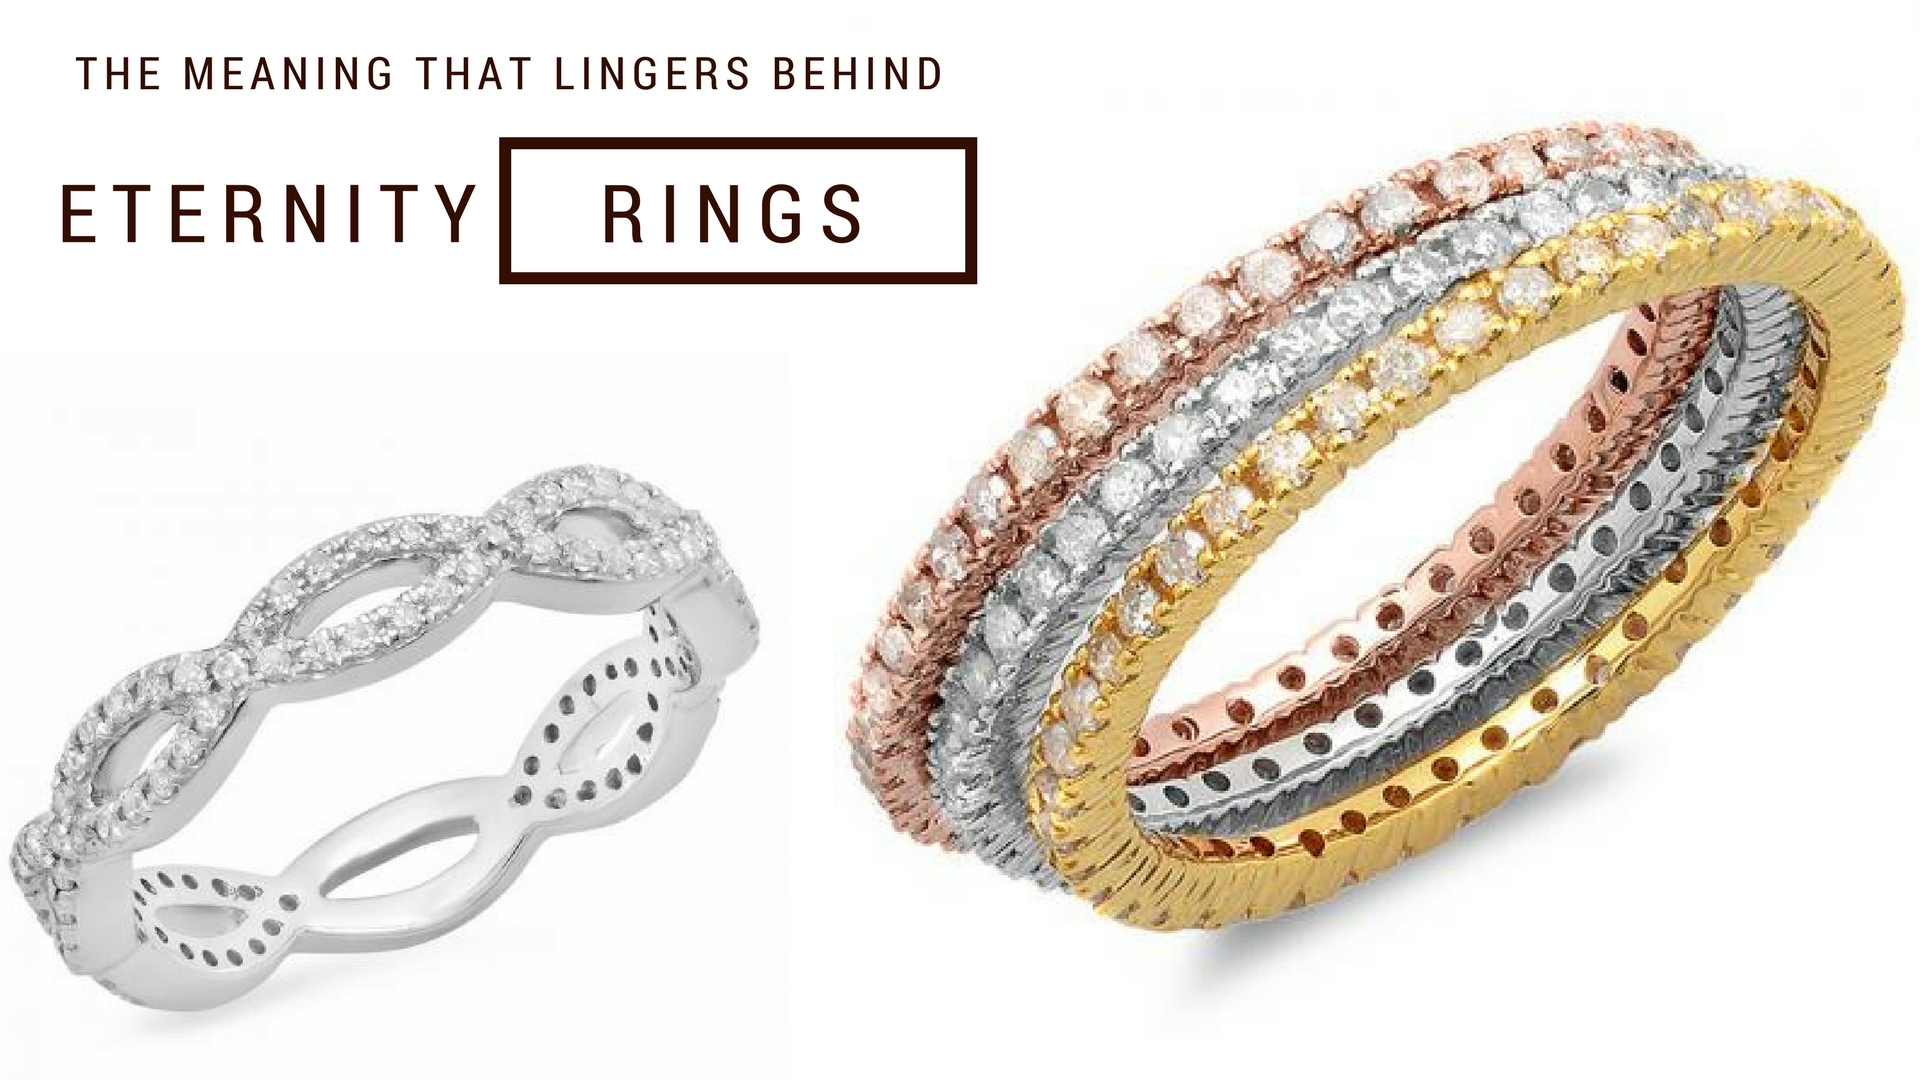 The Meaning That Lingers Behind Eternity Rings